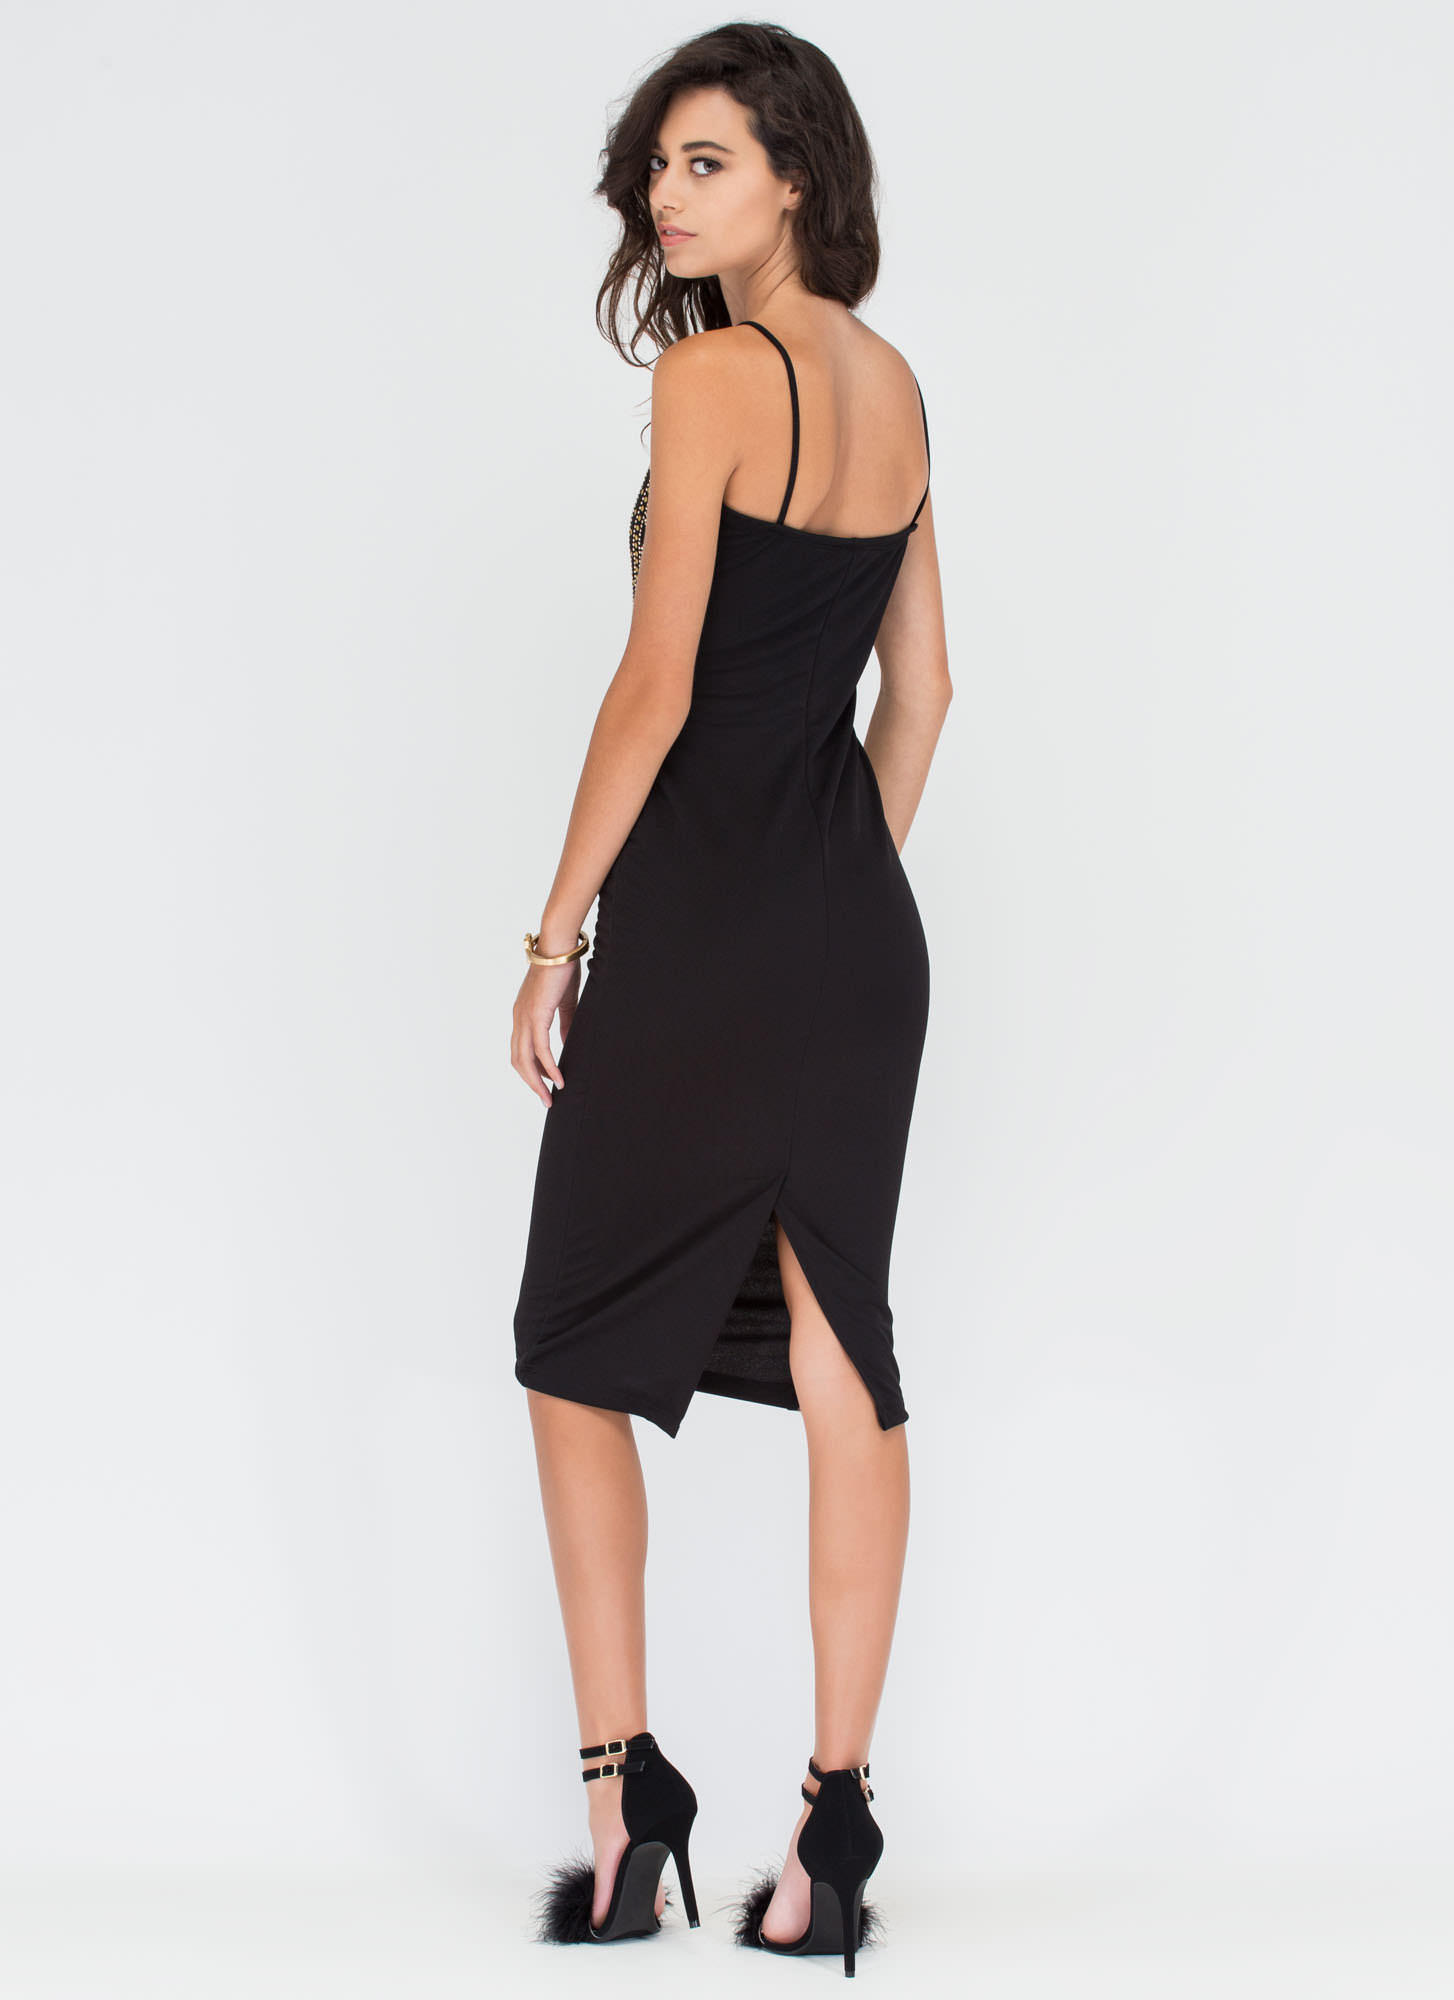 Moment To Swoon Embellished Midi Dress BLACK